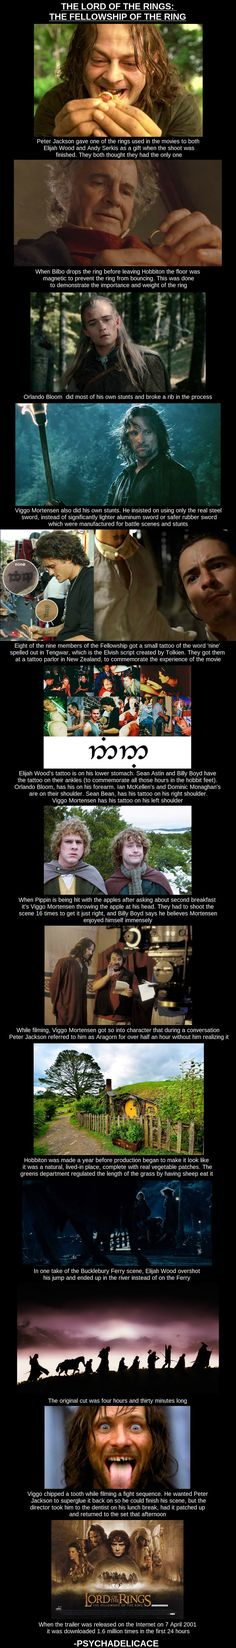 The Fellowship Of The Ring fun facts. Ironically, I'm listening to the soundtrack right now.